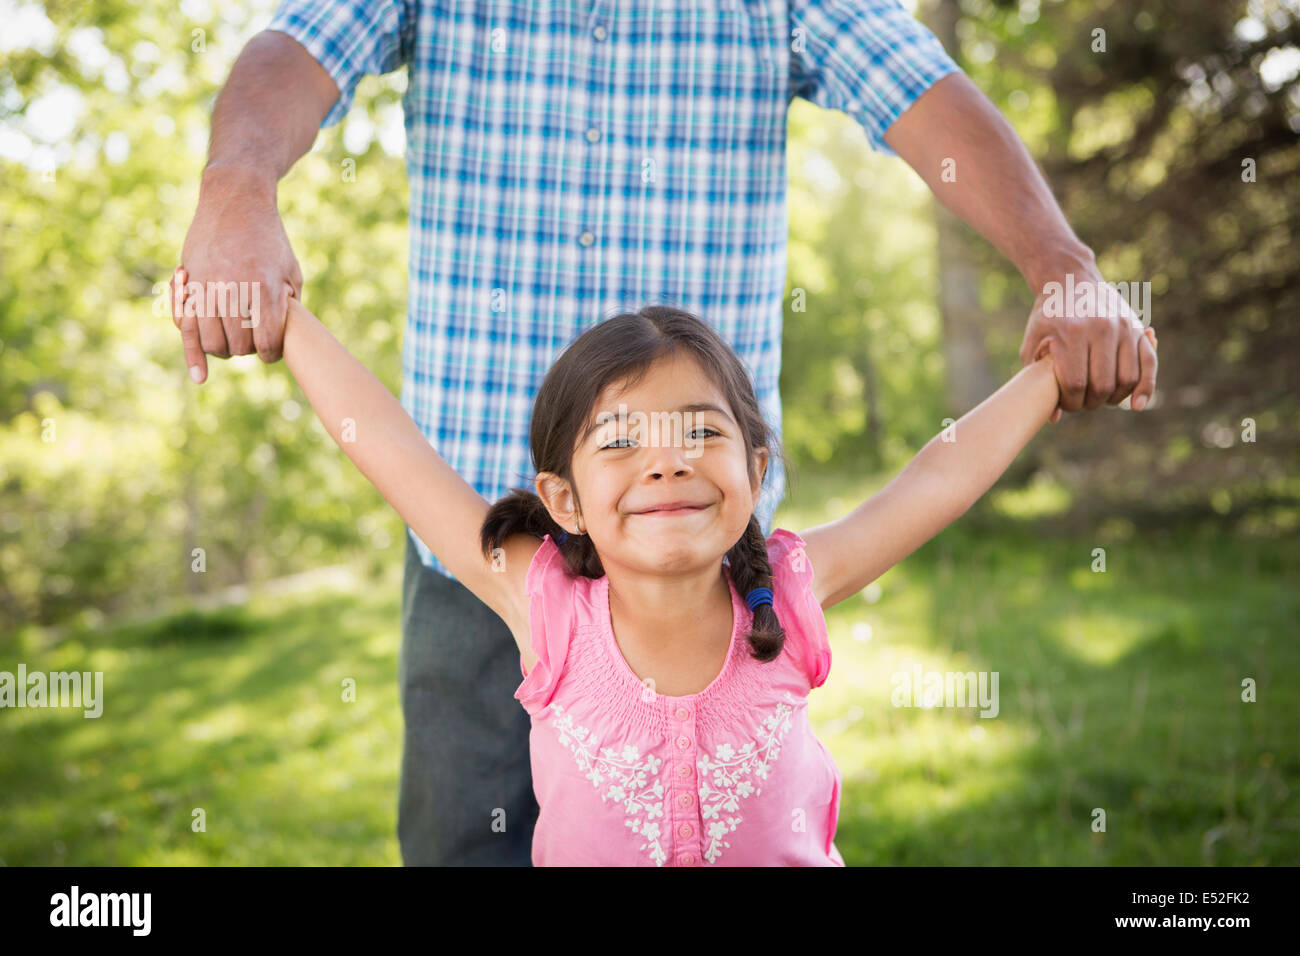 A young child in a pink dress with her arms outstretched playing with her father. - Stock Image